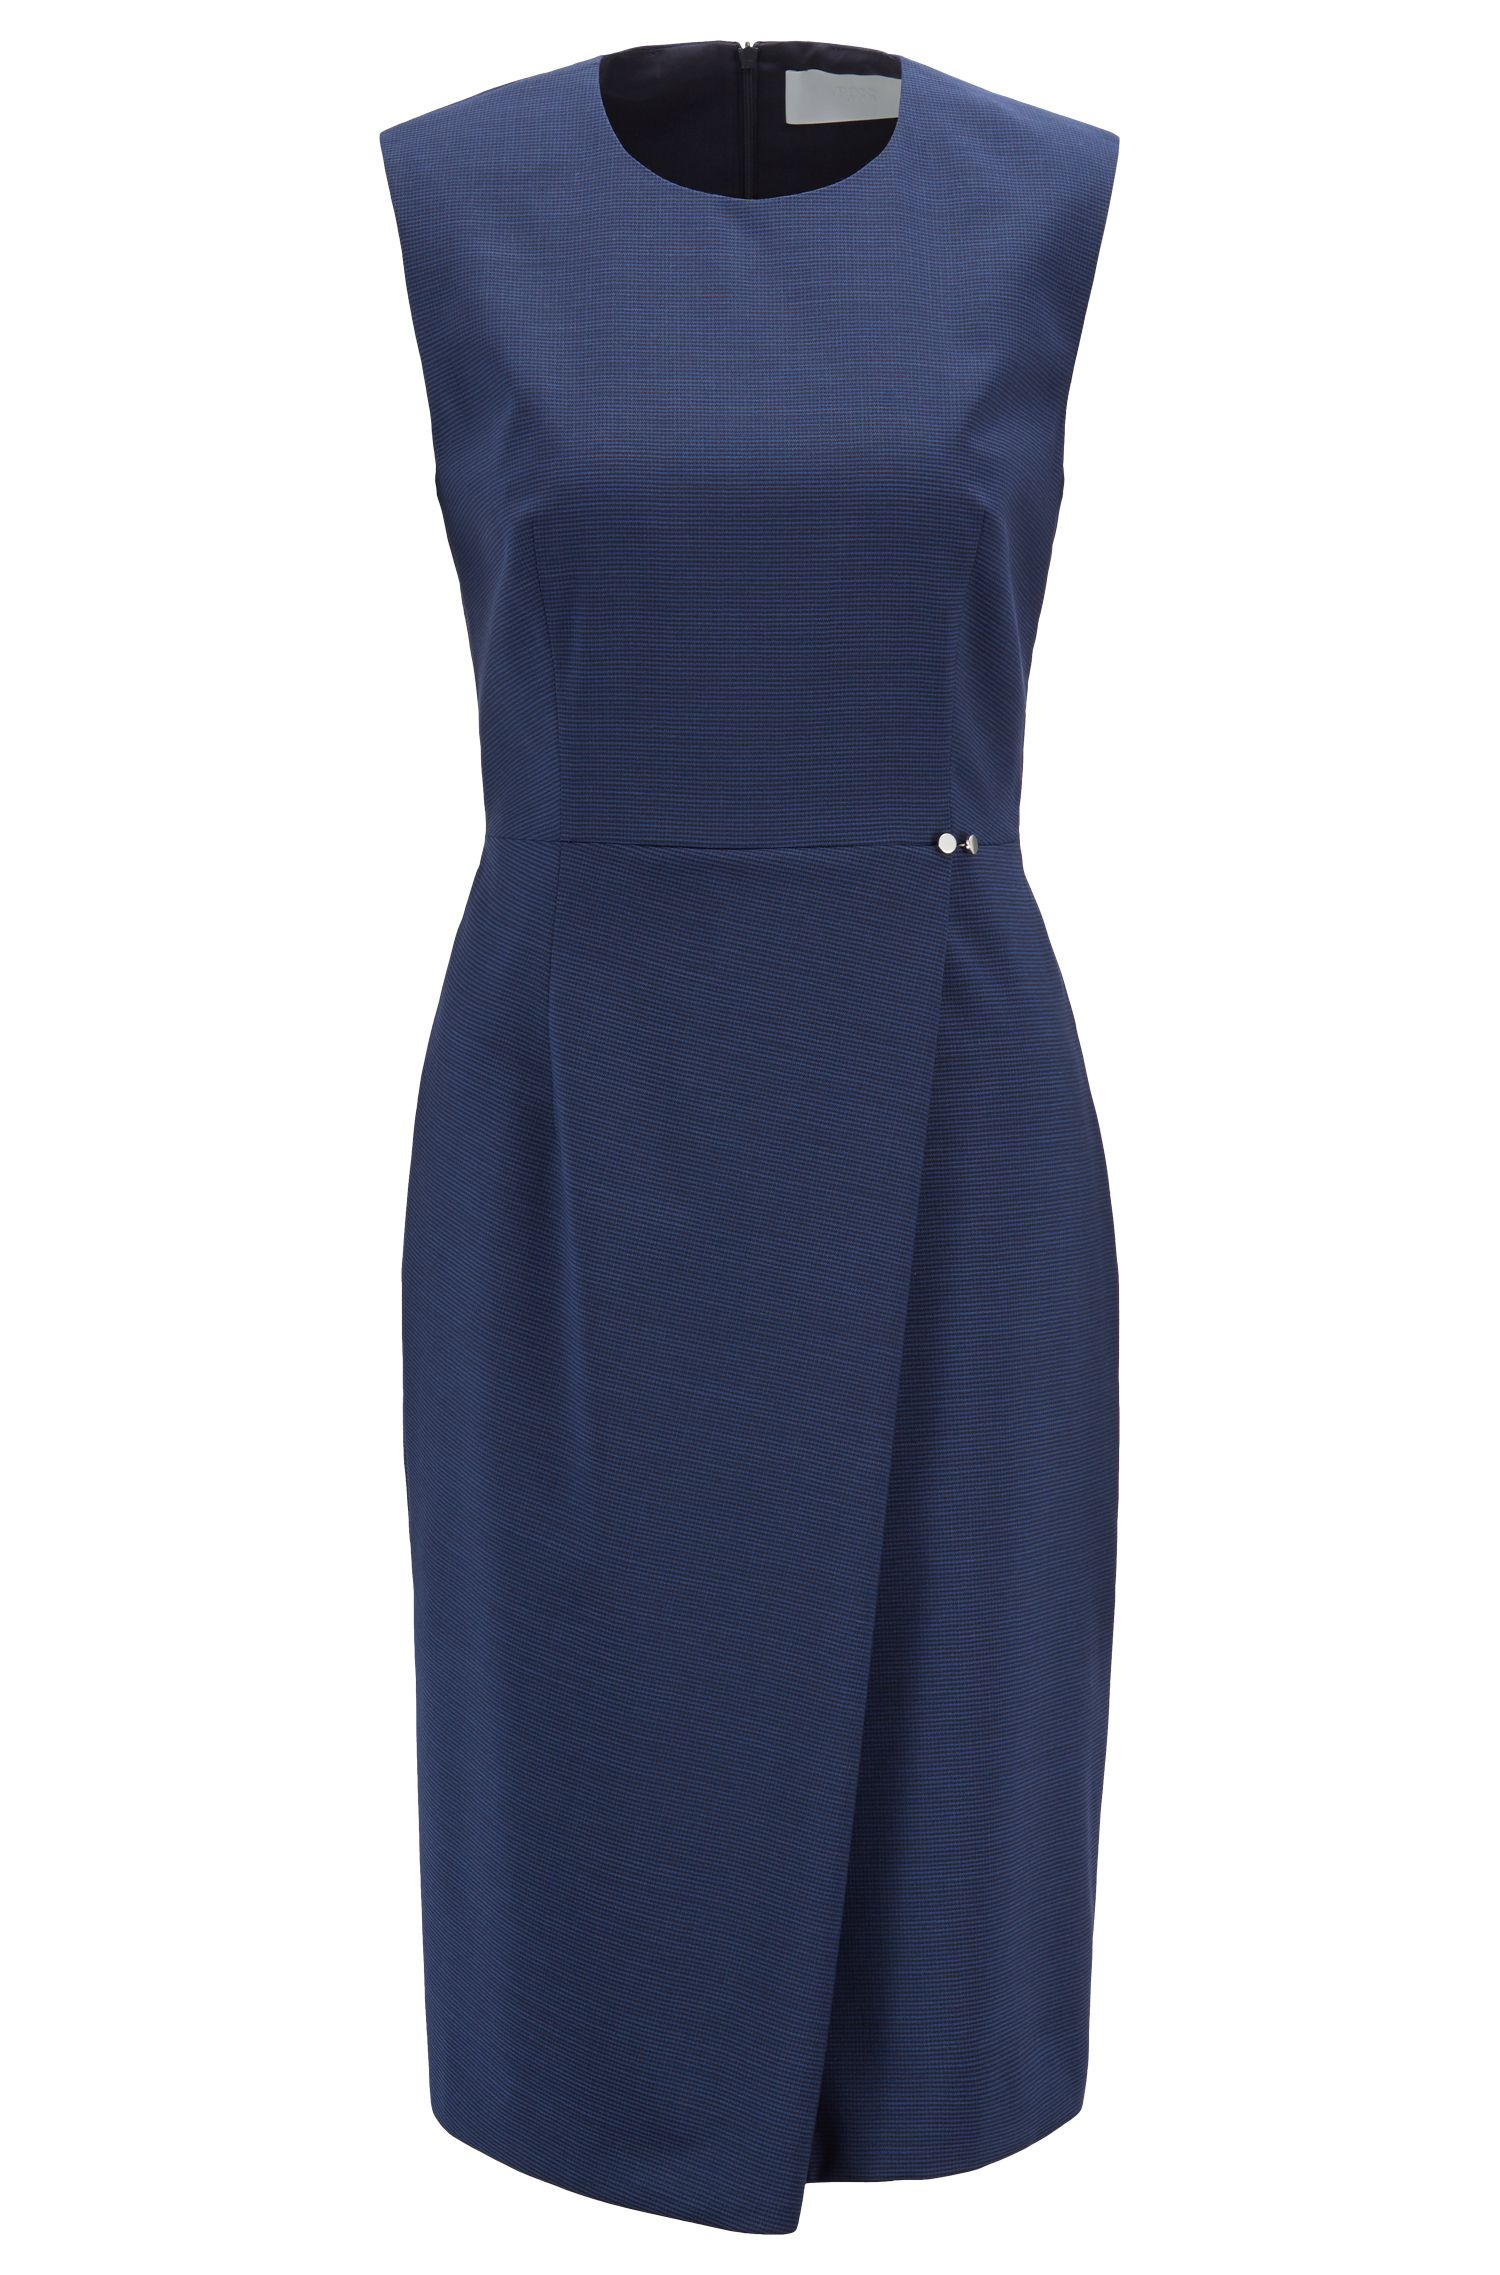 Slim-fit dress in virgin wool with wrap skirt, Patterned